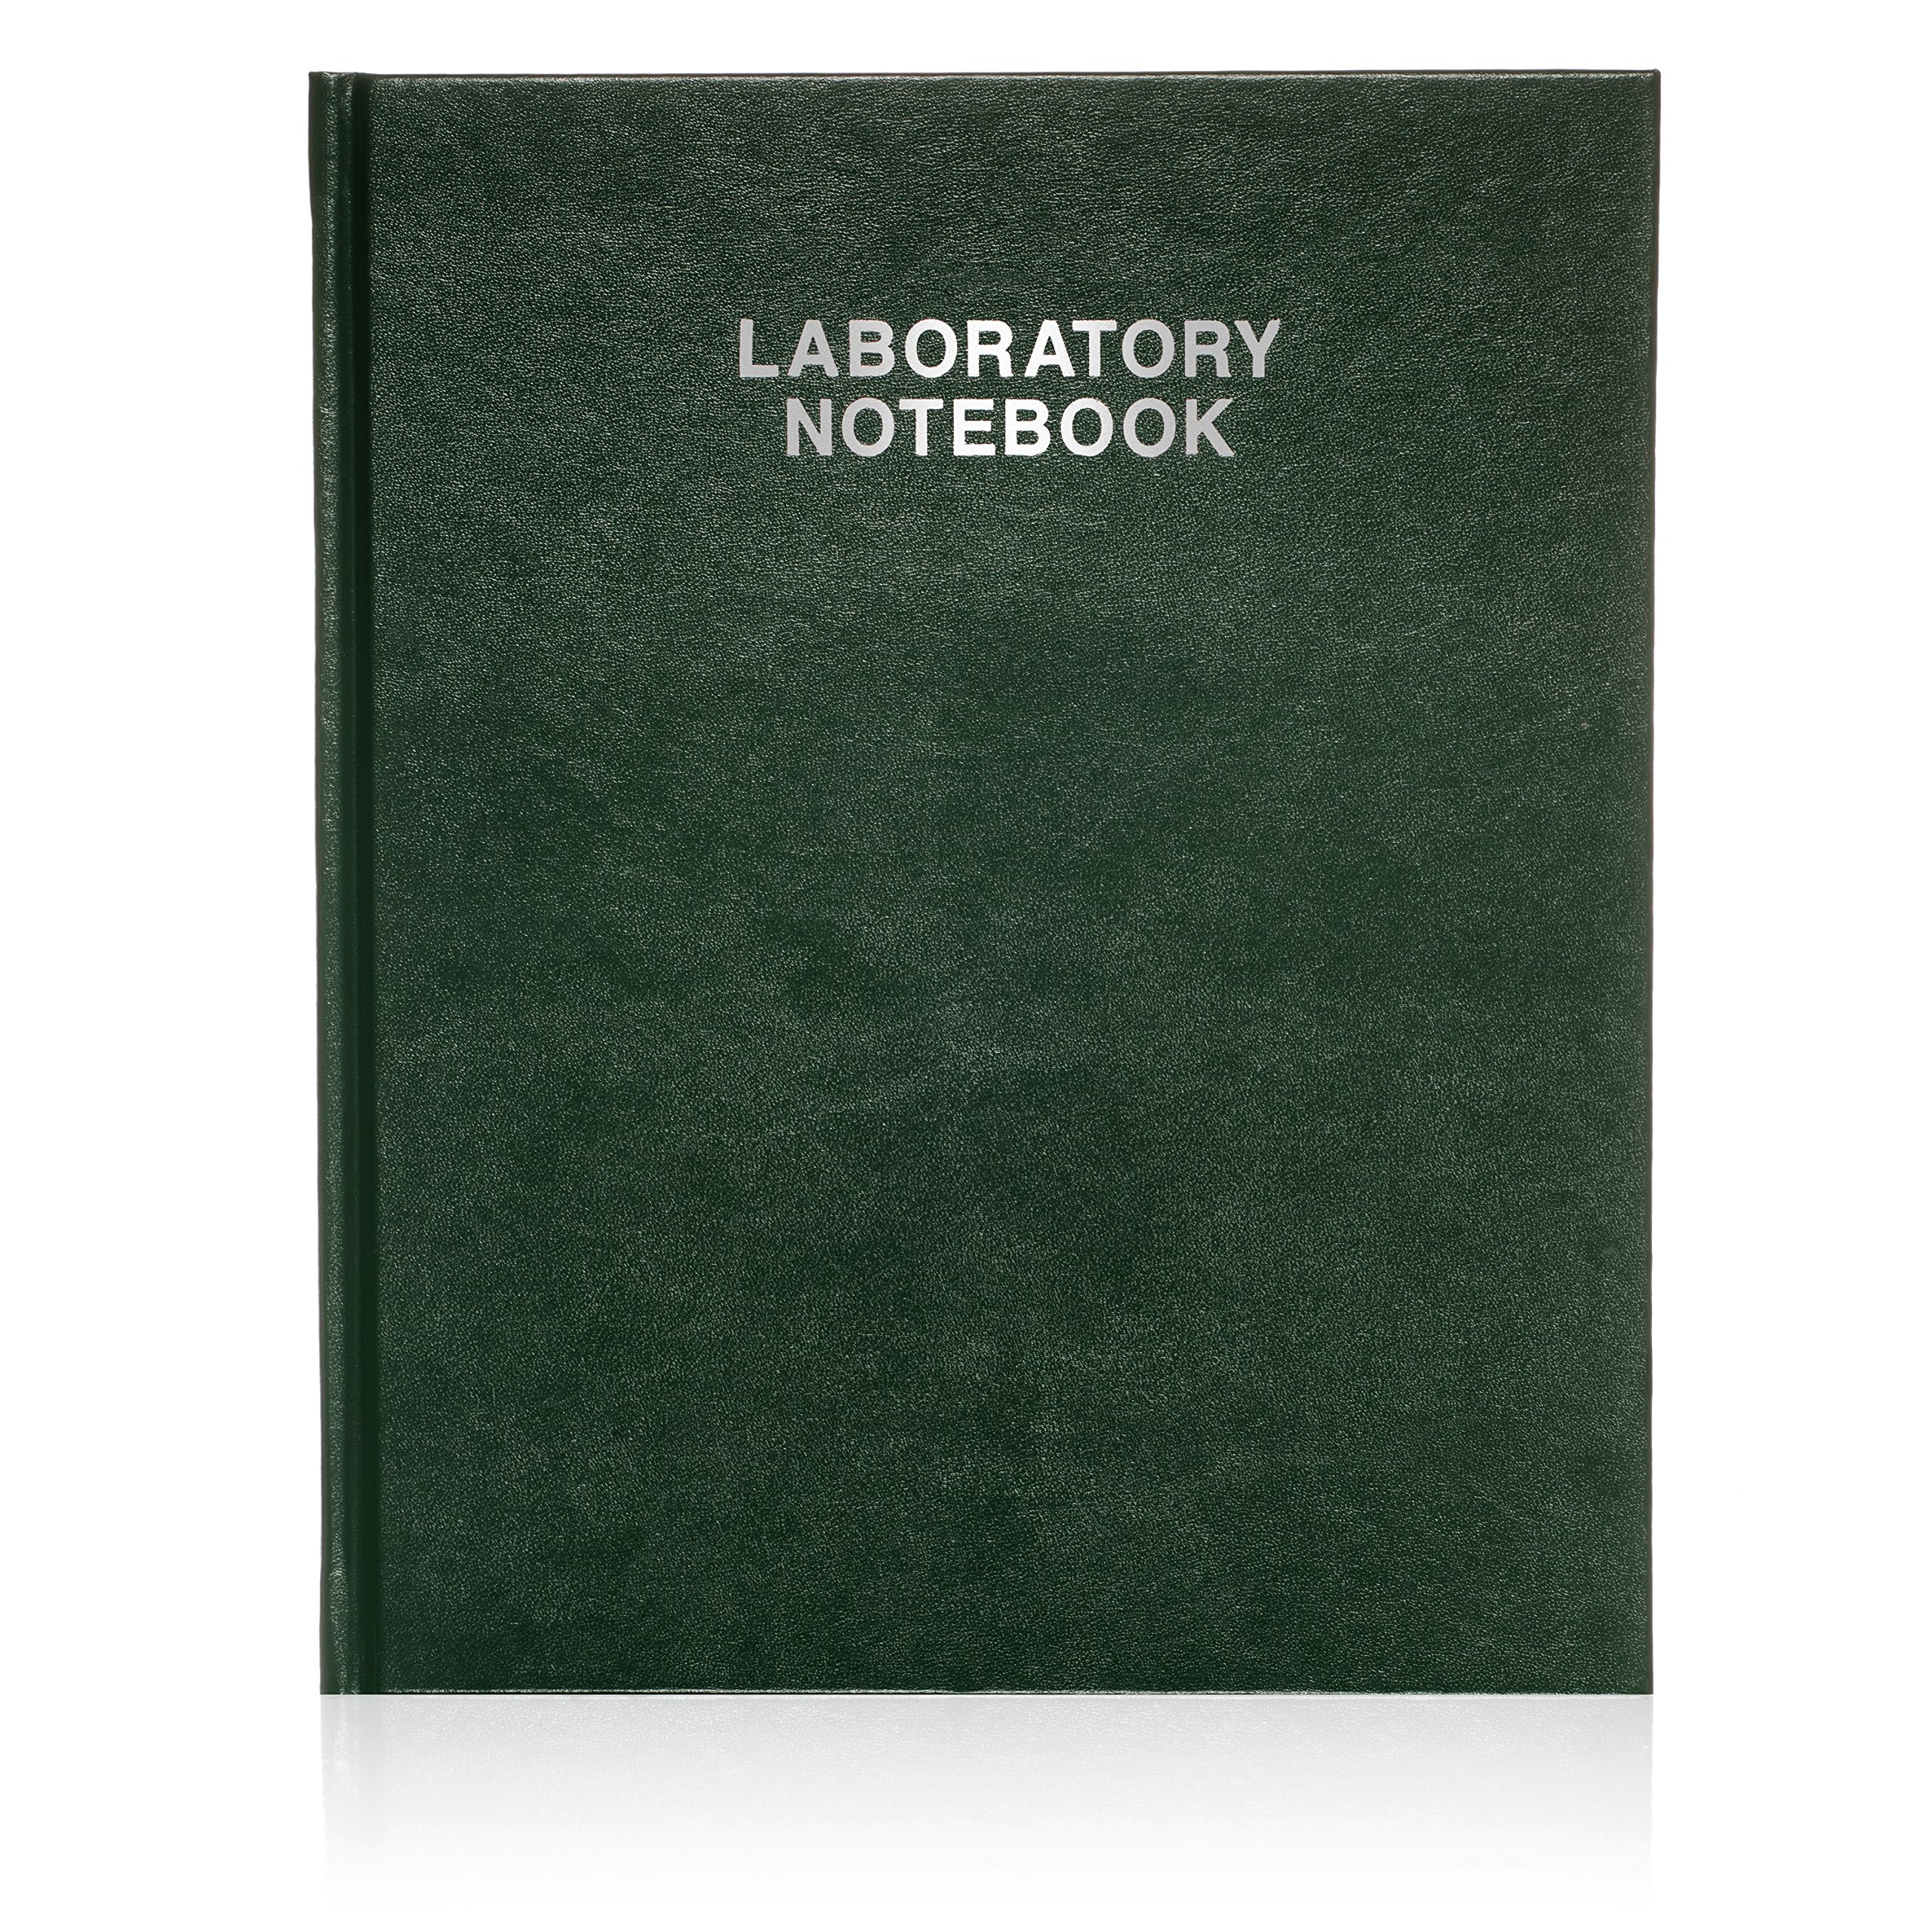 Scientific Notebook Company, Laboratory Notebook, 96 Pages 3001HC Green Hard Cover by Scientific Notebook Company